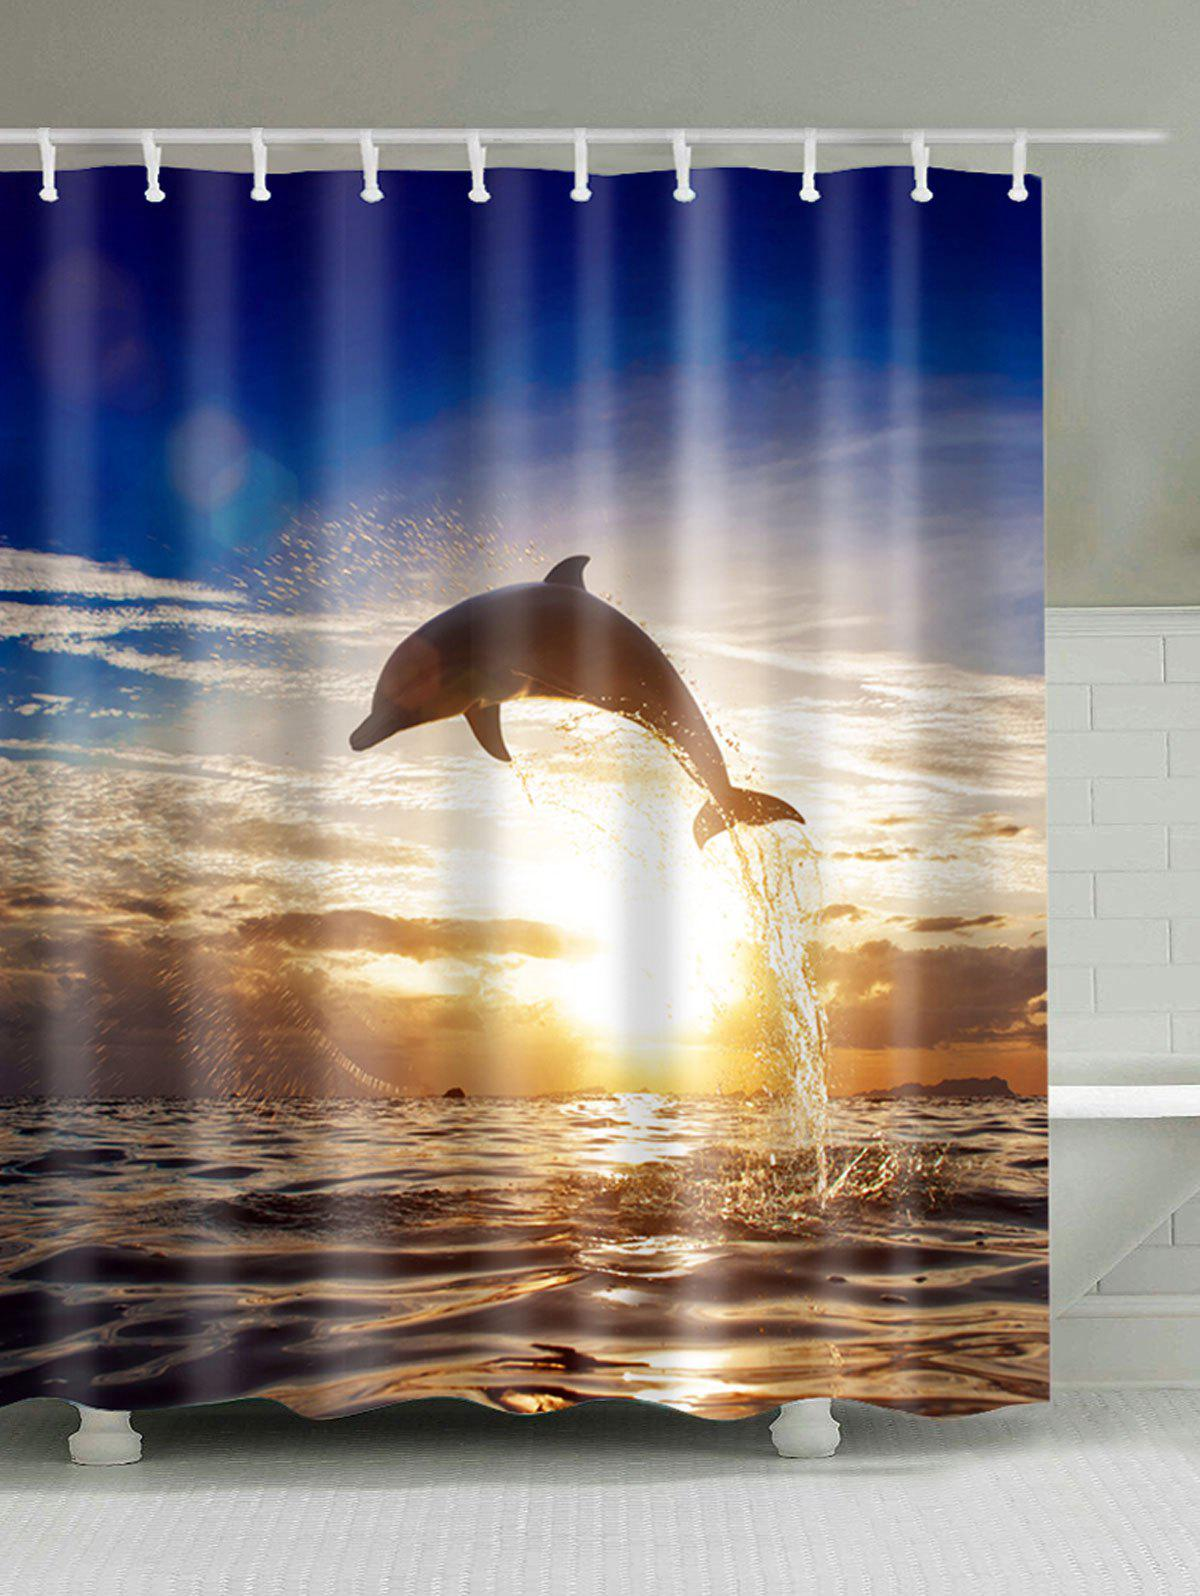 Sunset Dolphin Fabric Shower Curtain For Bathroom